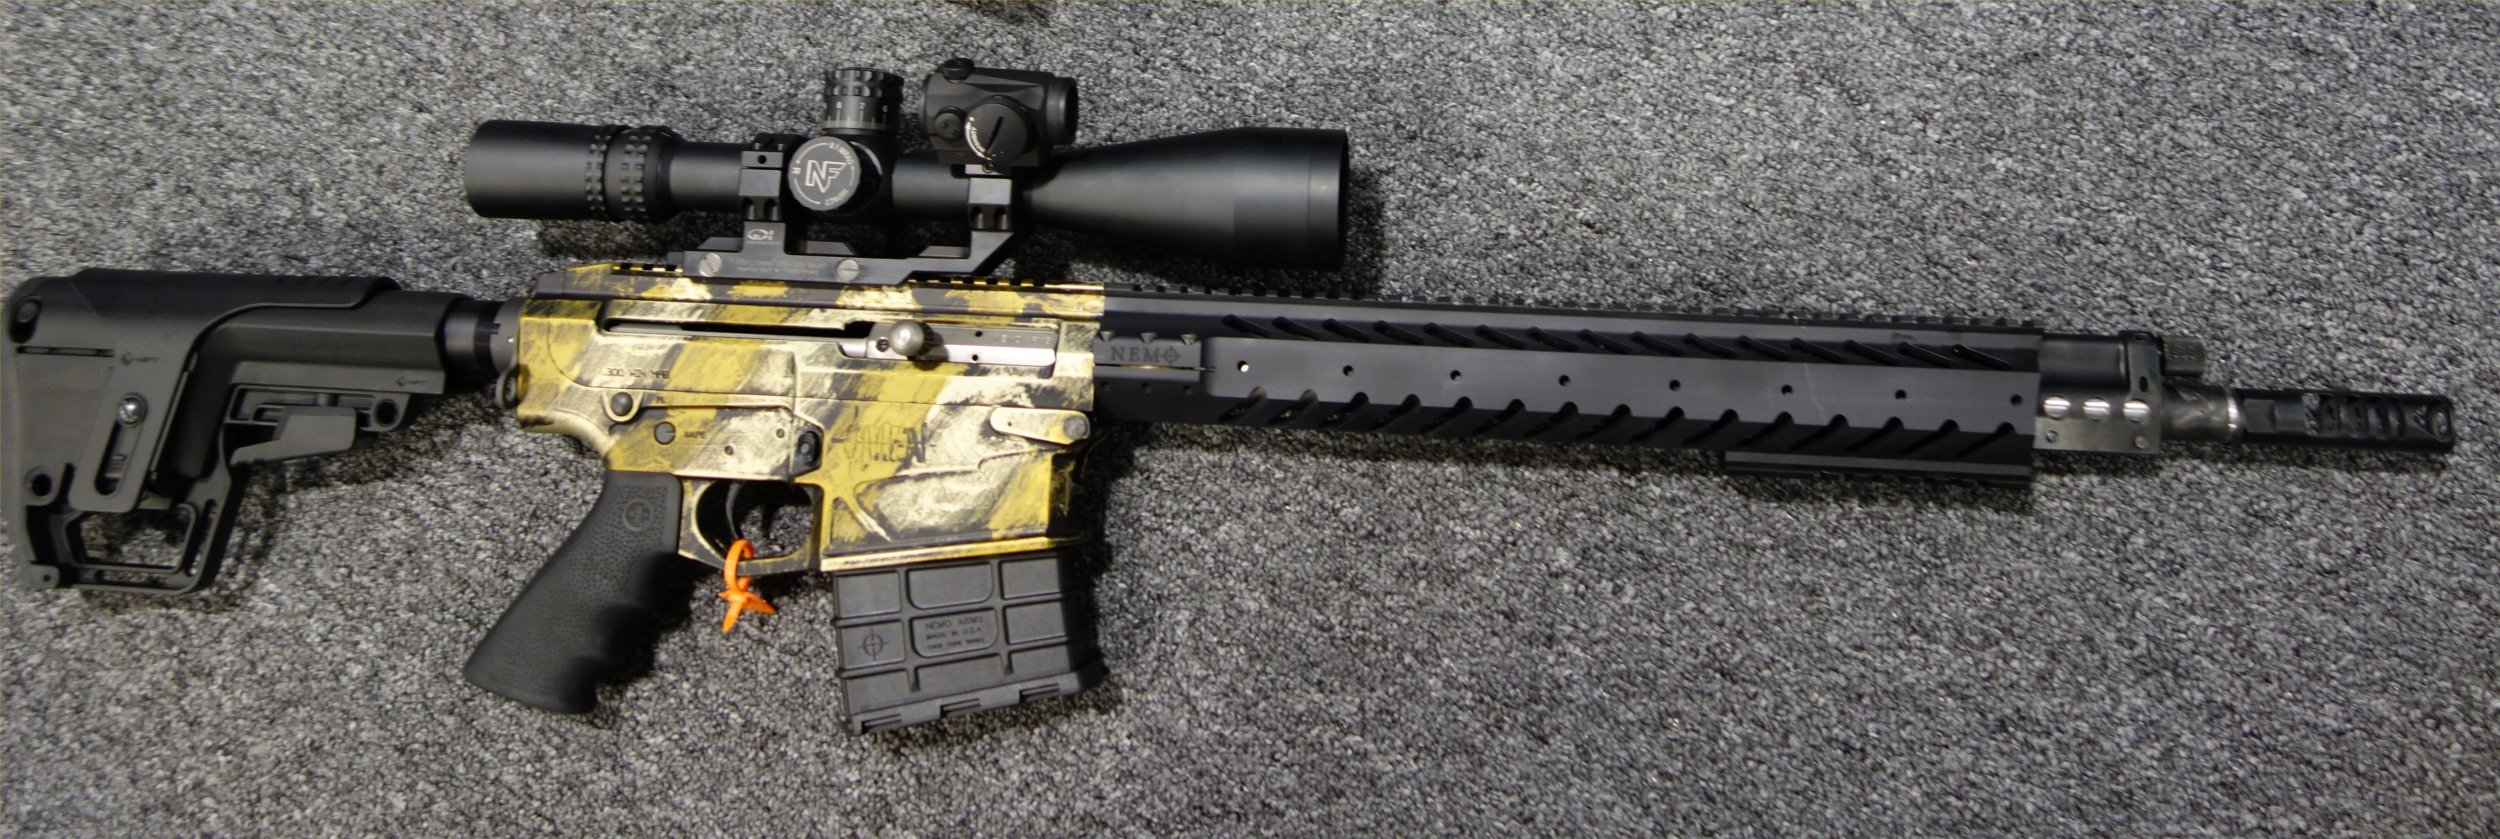 Nemo Arms Omen Recon 300 Win Mag 300wm 18 Tactical Ar